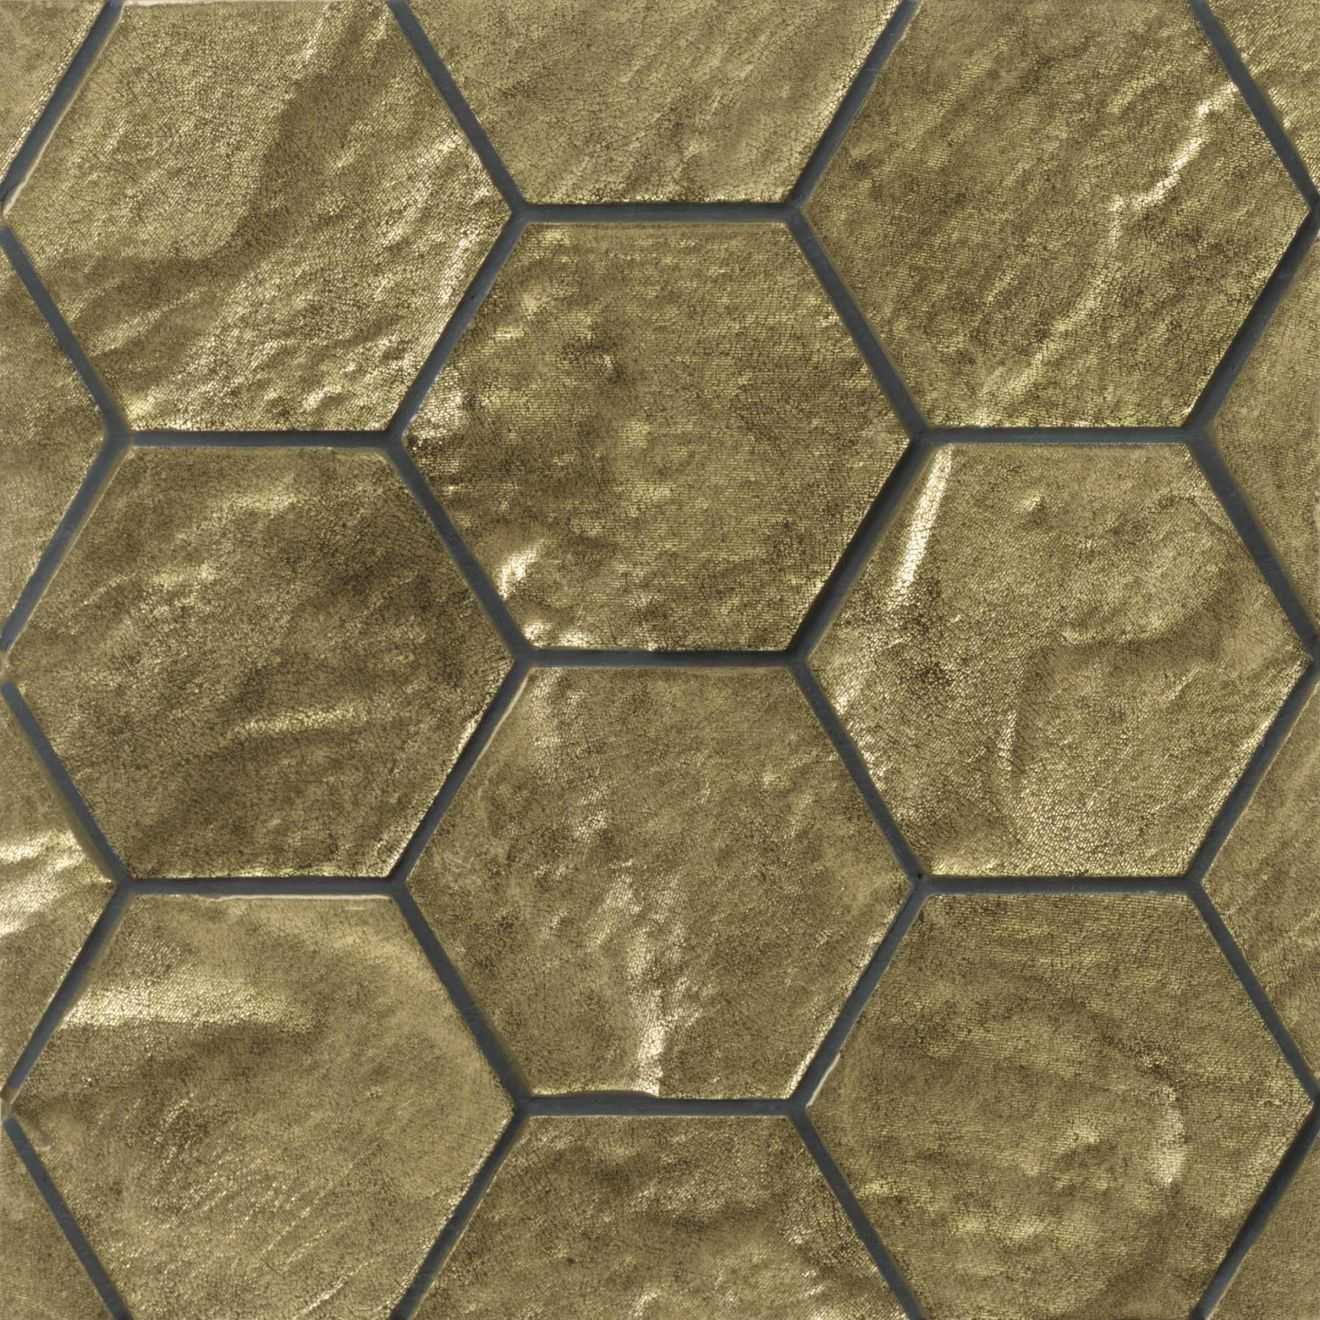 Elecdrix Wall Mosaic in Gold as Love